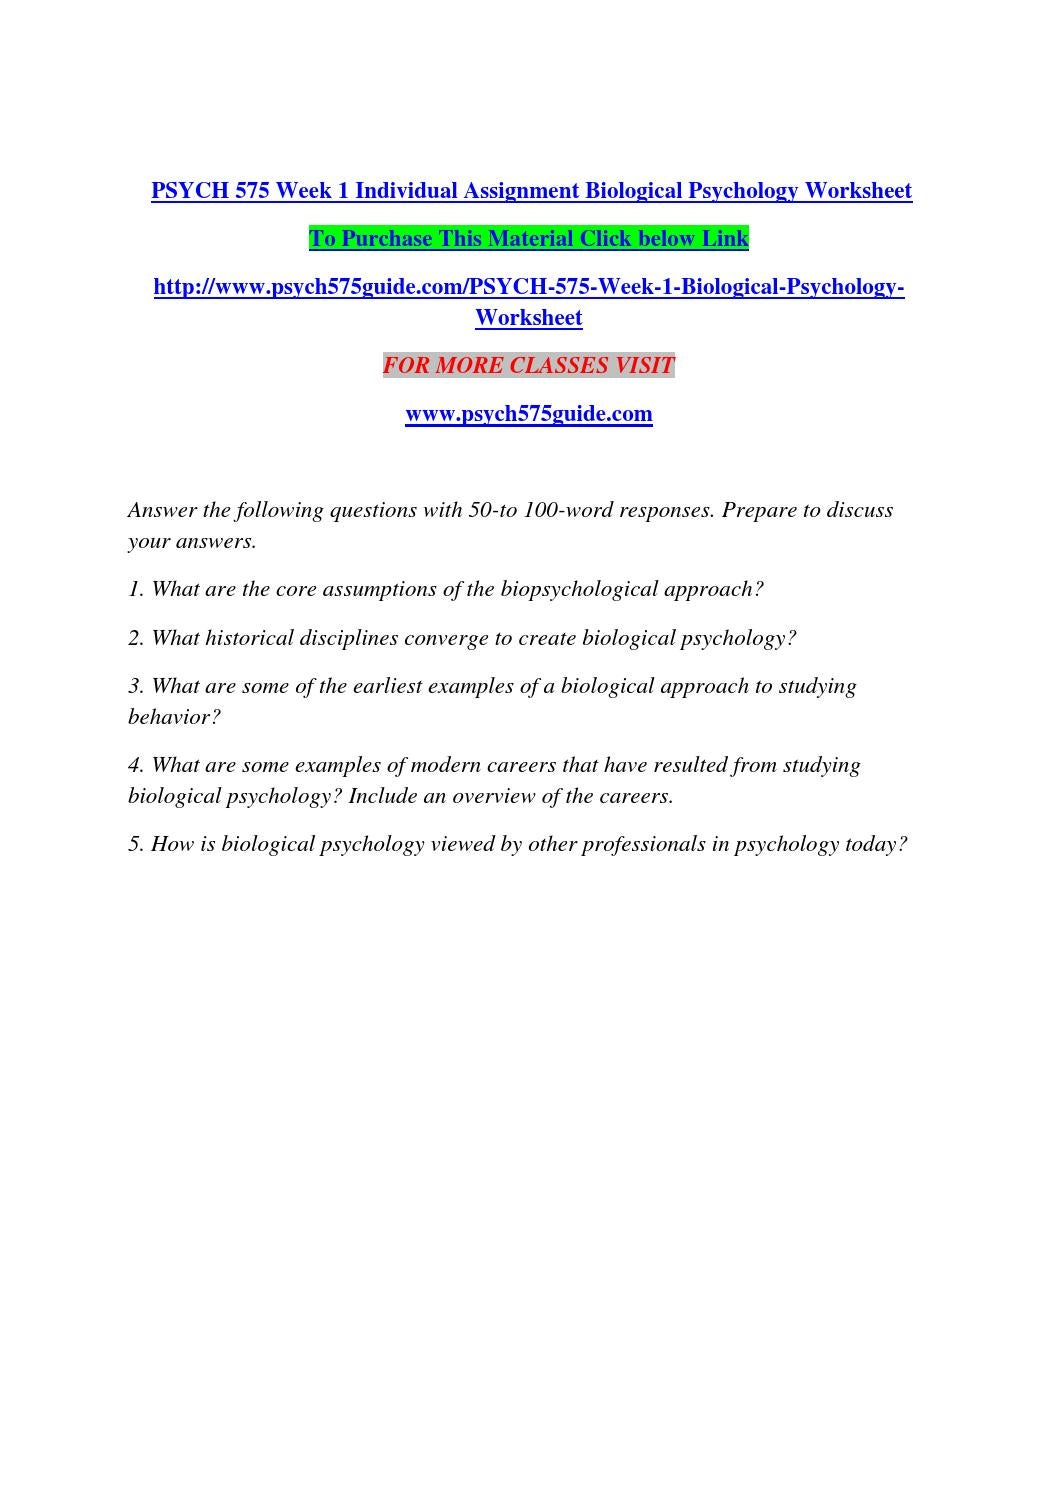 Psych 575 Week 1 Individual Assignment Biological Psychology